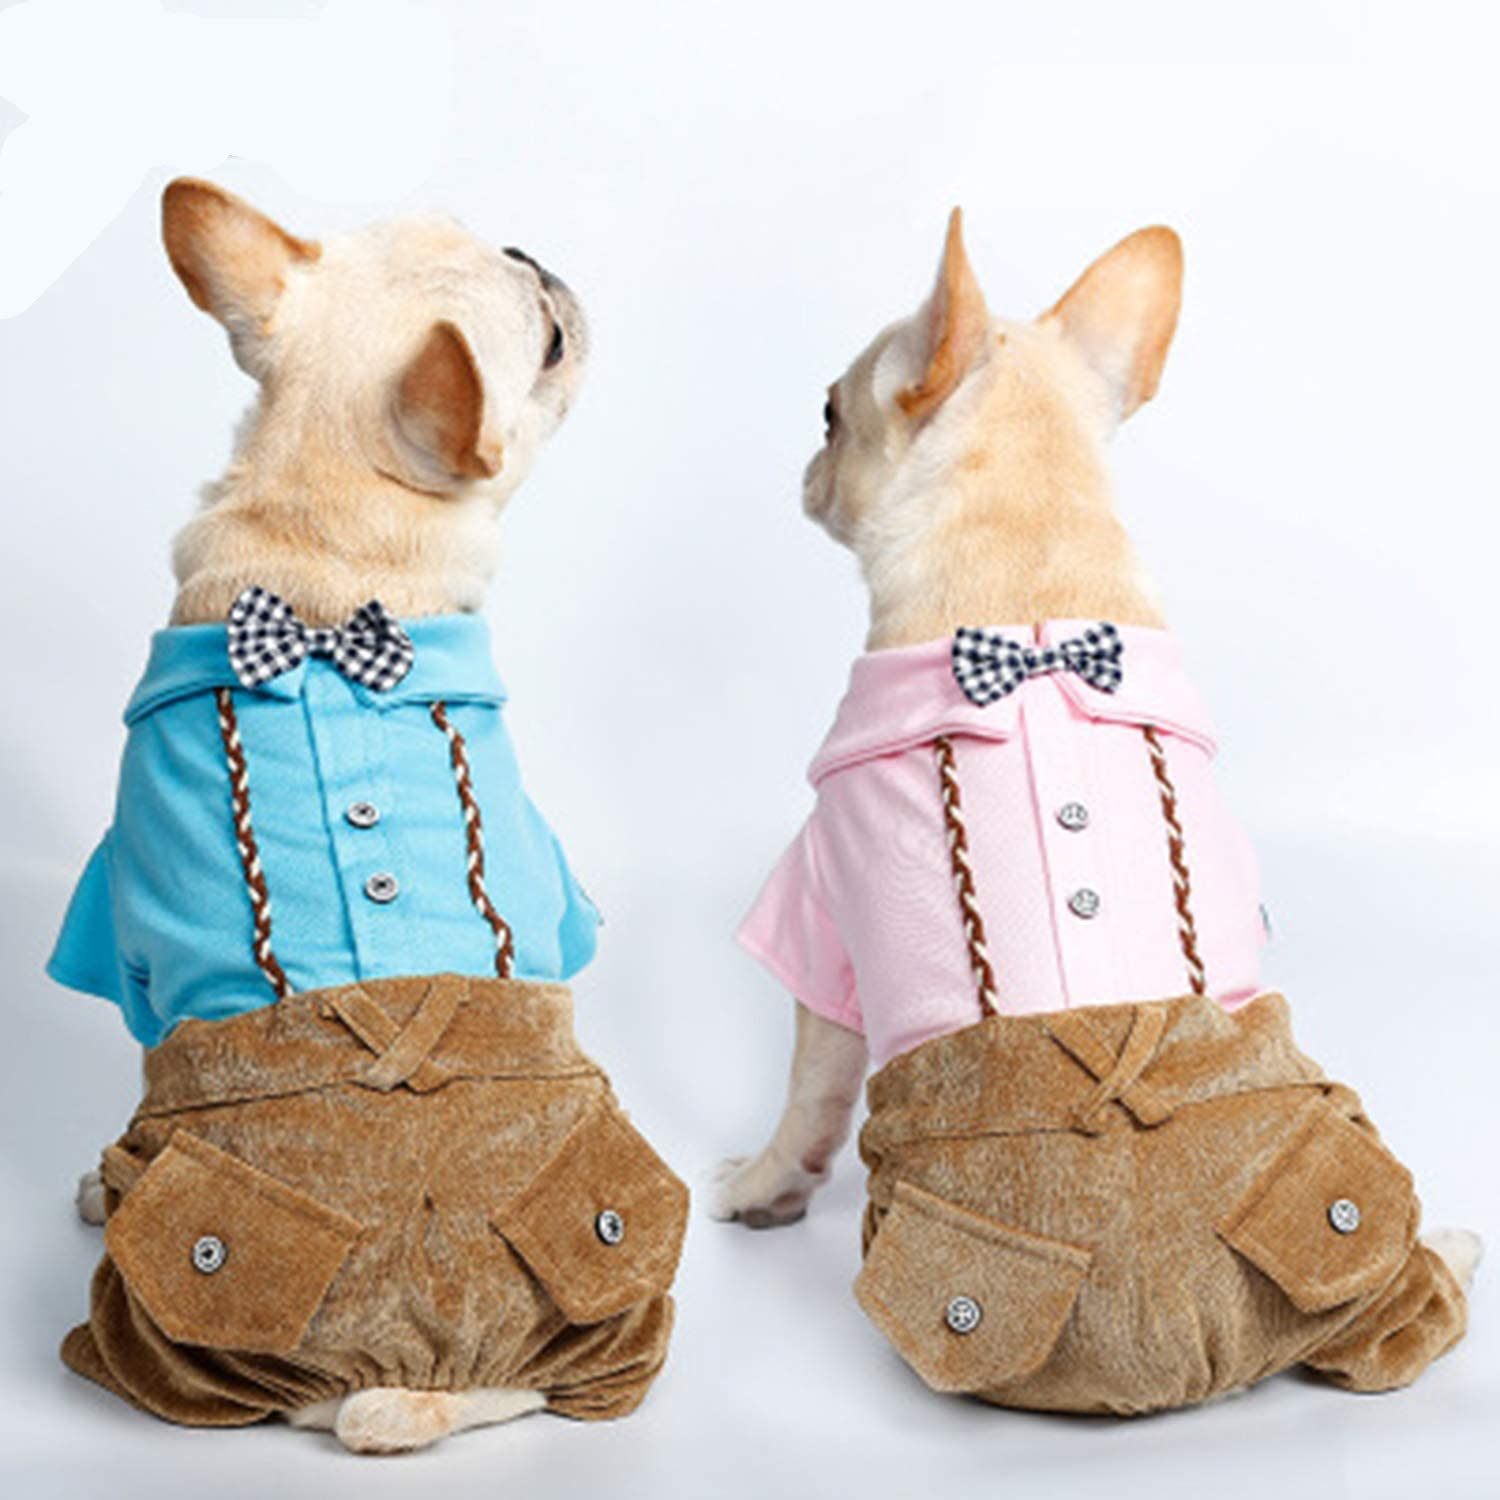 Dog Gentleman FourLegged Clothes Puppy Dog Clothes VIP Teddy Autumn and Winter Keep Warm Pet Clothing 2 Pcs